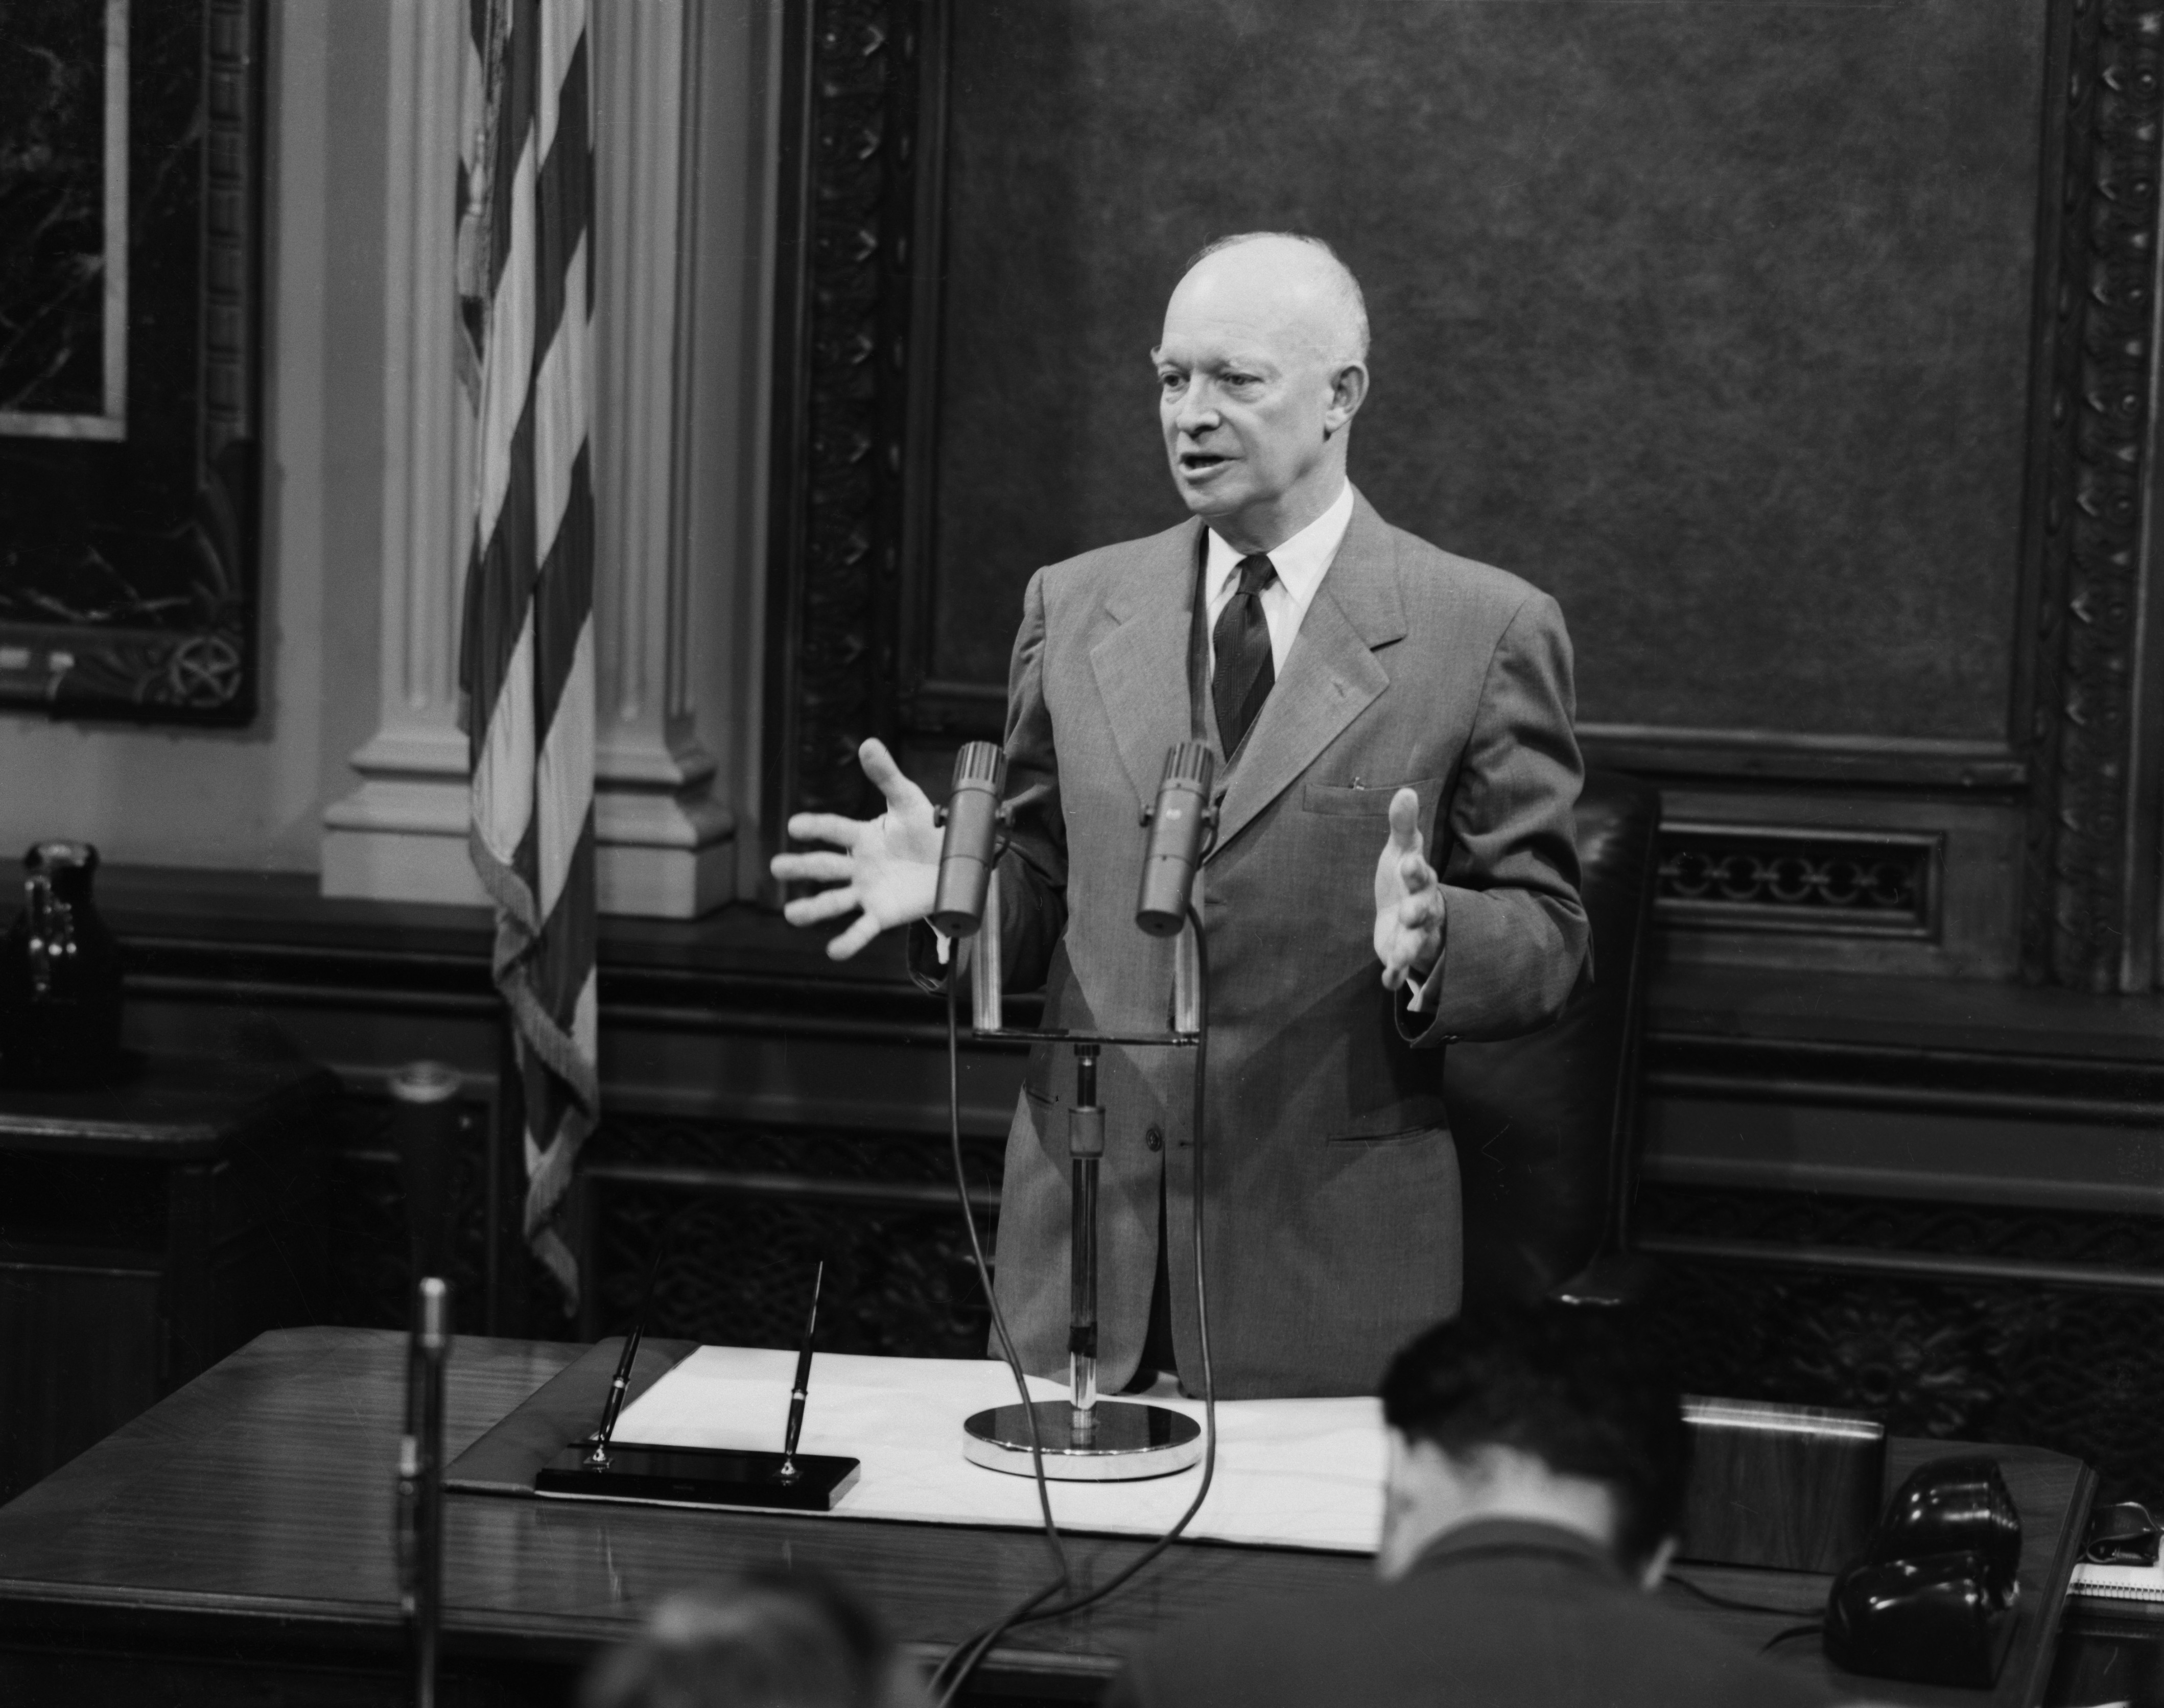 evaluate the presidency of dwight eisenhower essay The presidency of dwight d eisenhower -  he received an agreement between opposing forces to stop war at that time - dwight d eisenhower dwight d eisenhower's strong and experienced leadership in the united states military was the main contribution of him becoming one of the greatest.